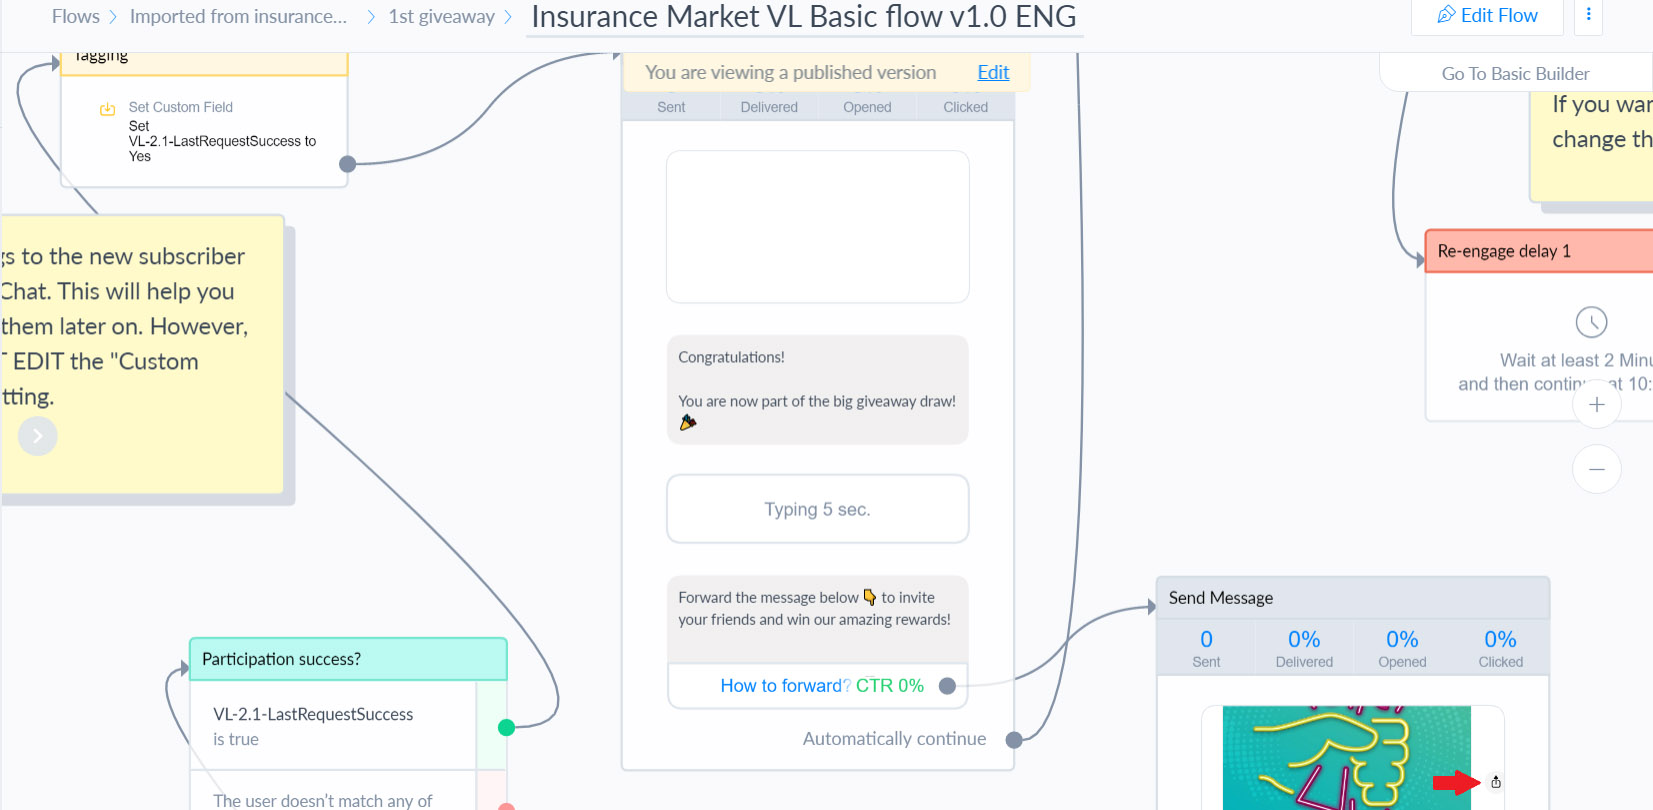 Insurance Market Entry Messenger Flow